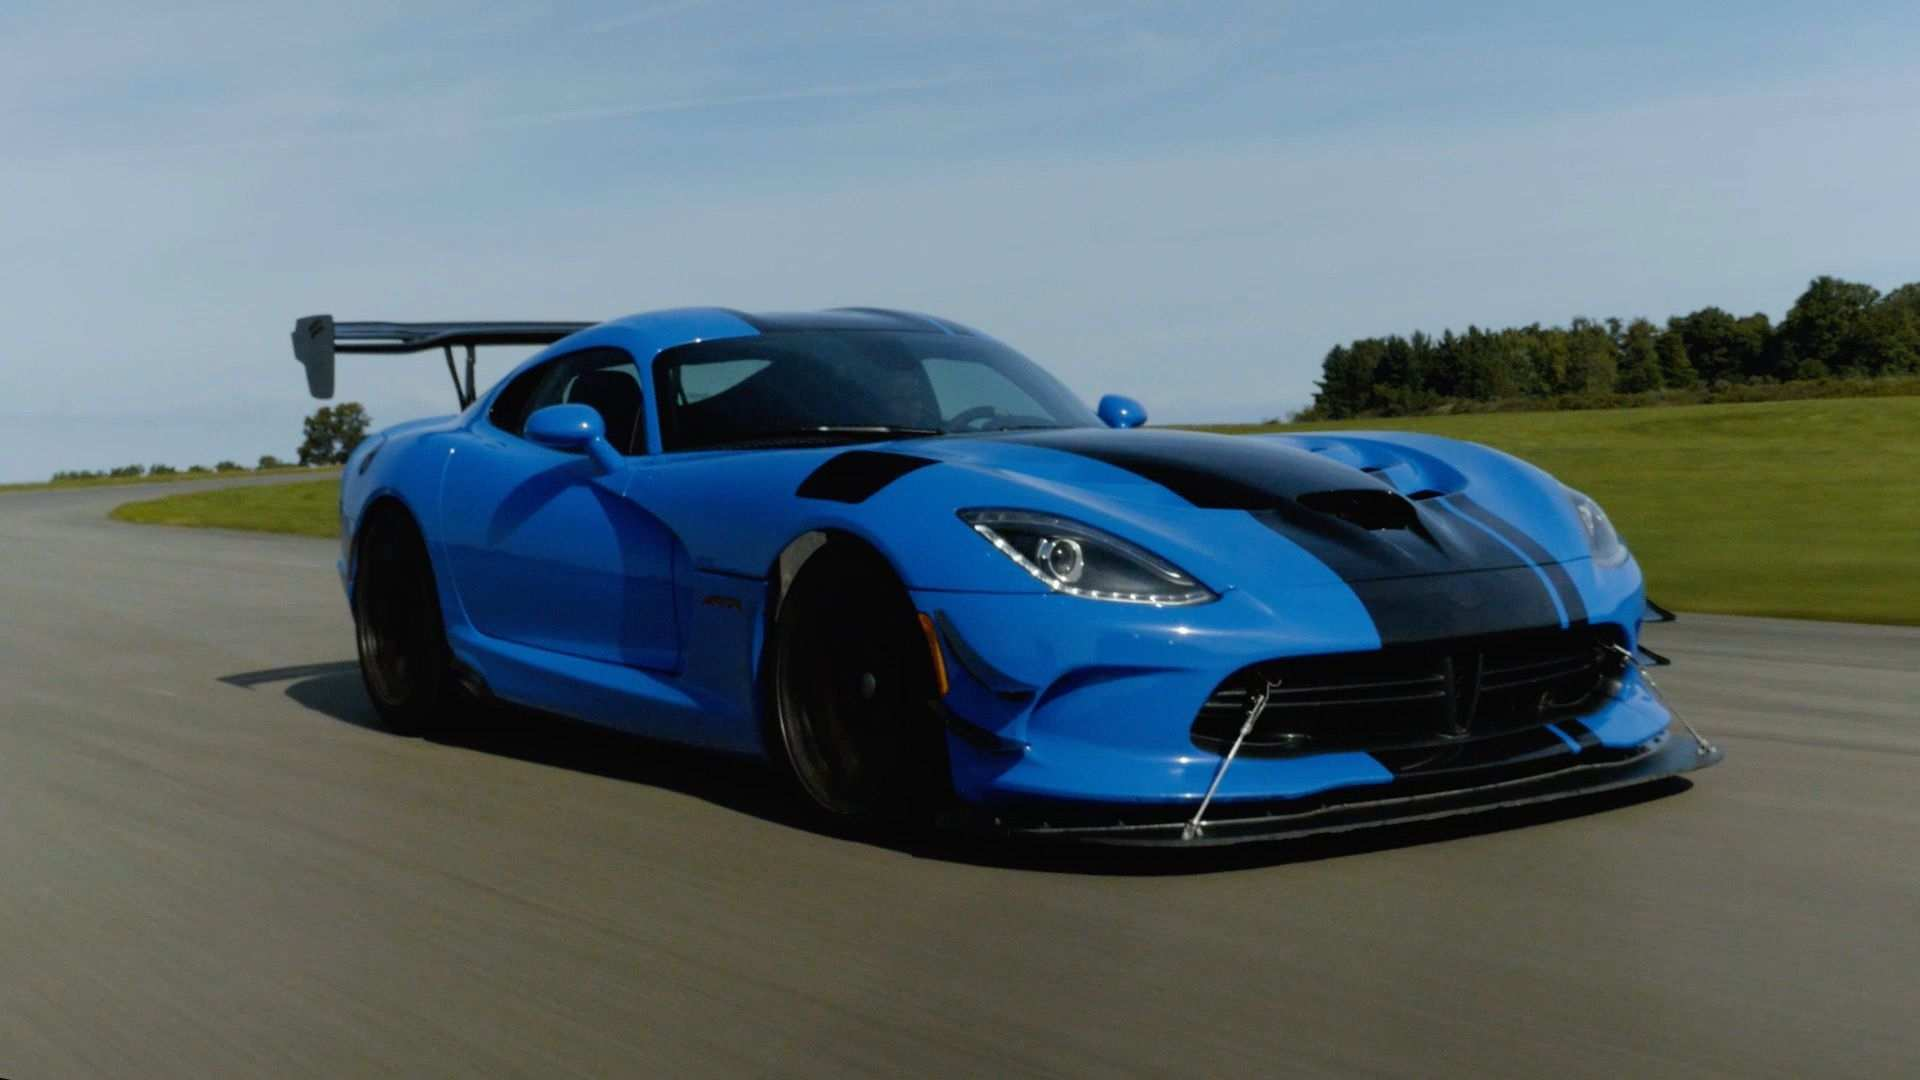 13 New 2019 Dodge Viper Acr Redesign and Concept by 2019 Dodge Viper Acr